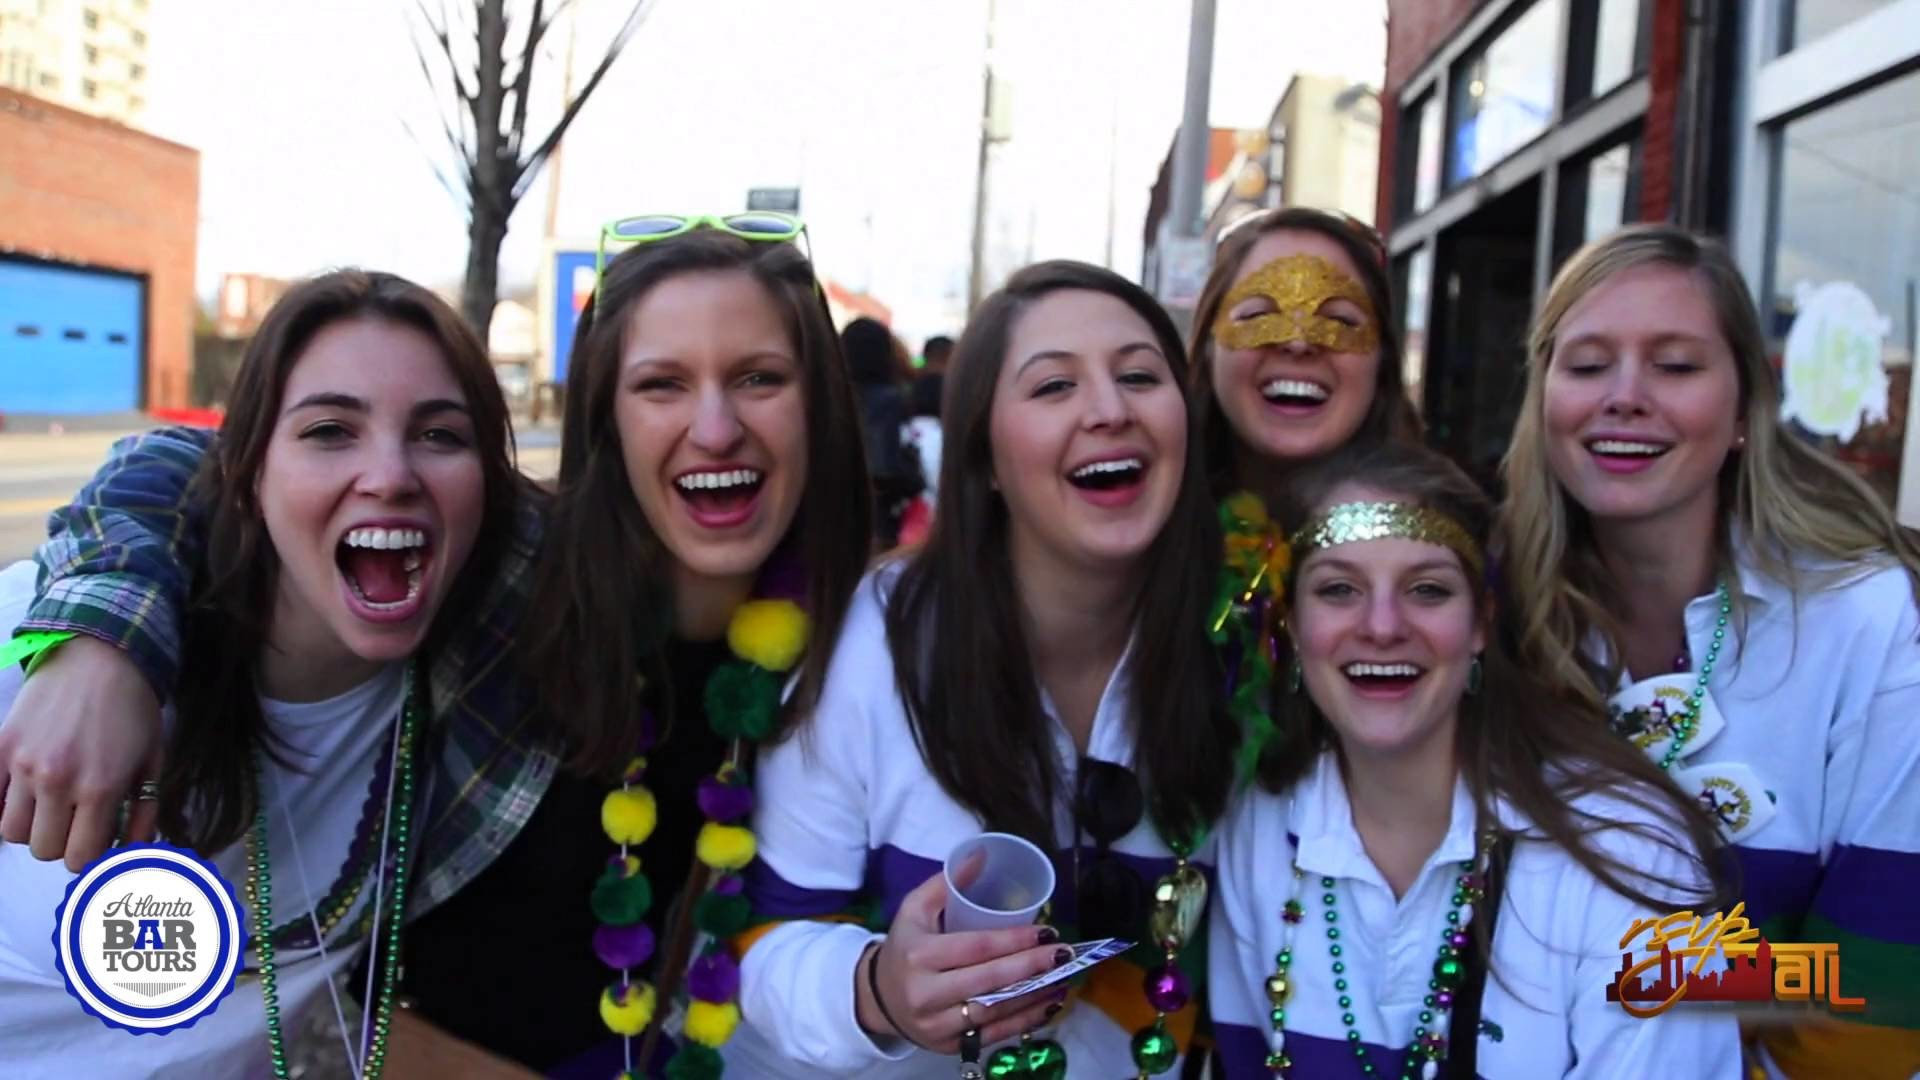 1920x1080 Best bars and restaurants to celebrate Mardi Gras in Atlanta